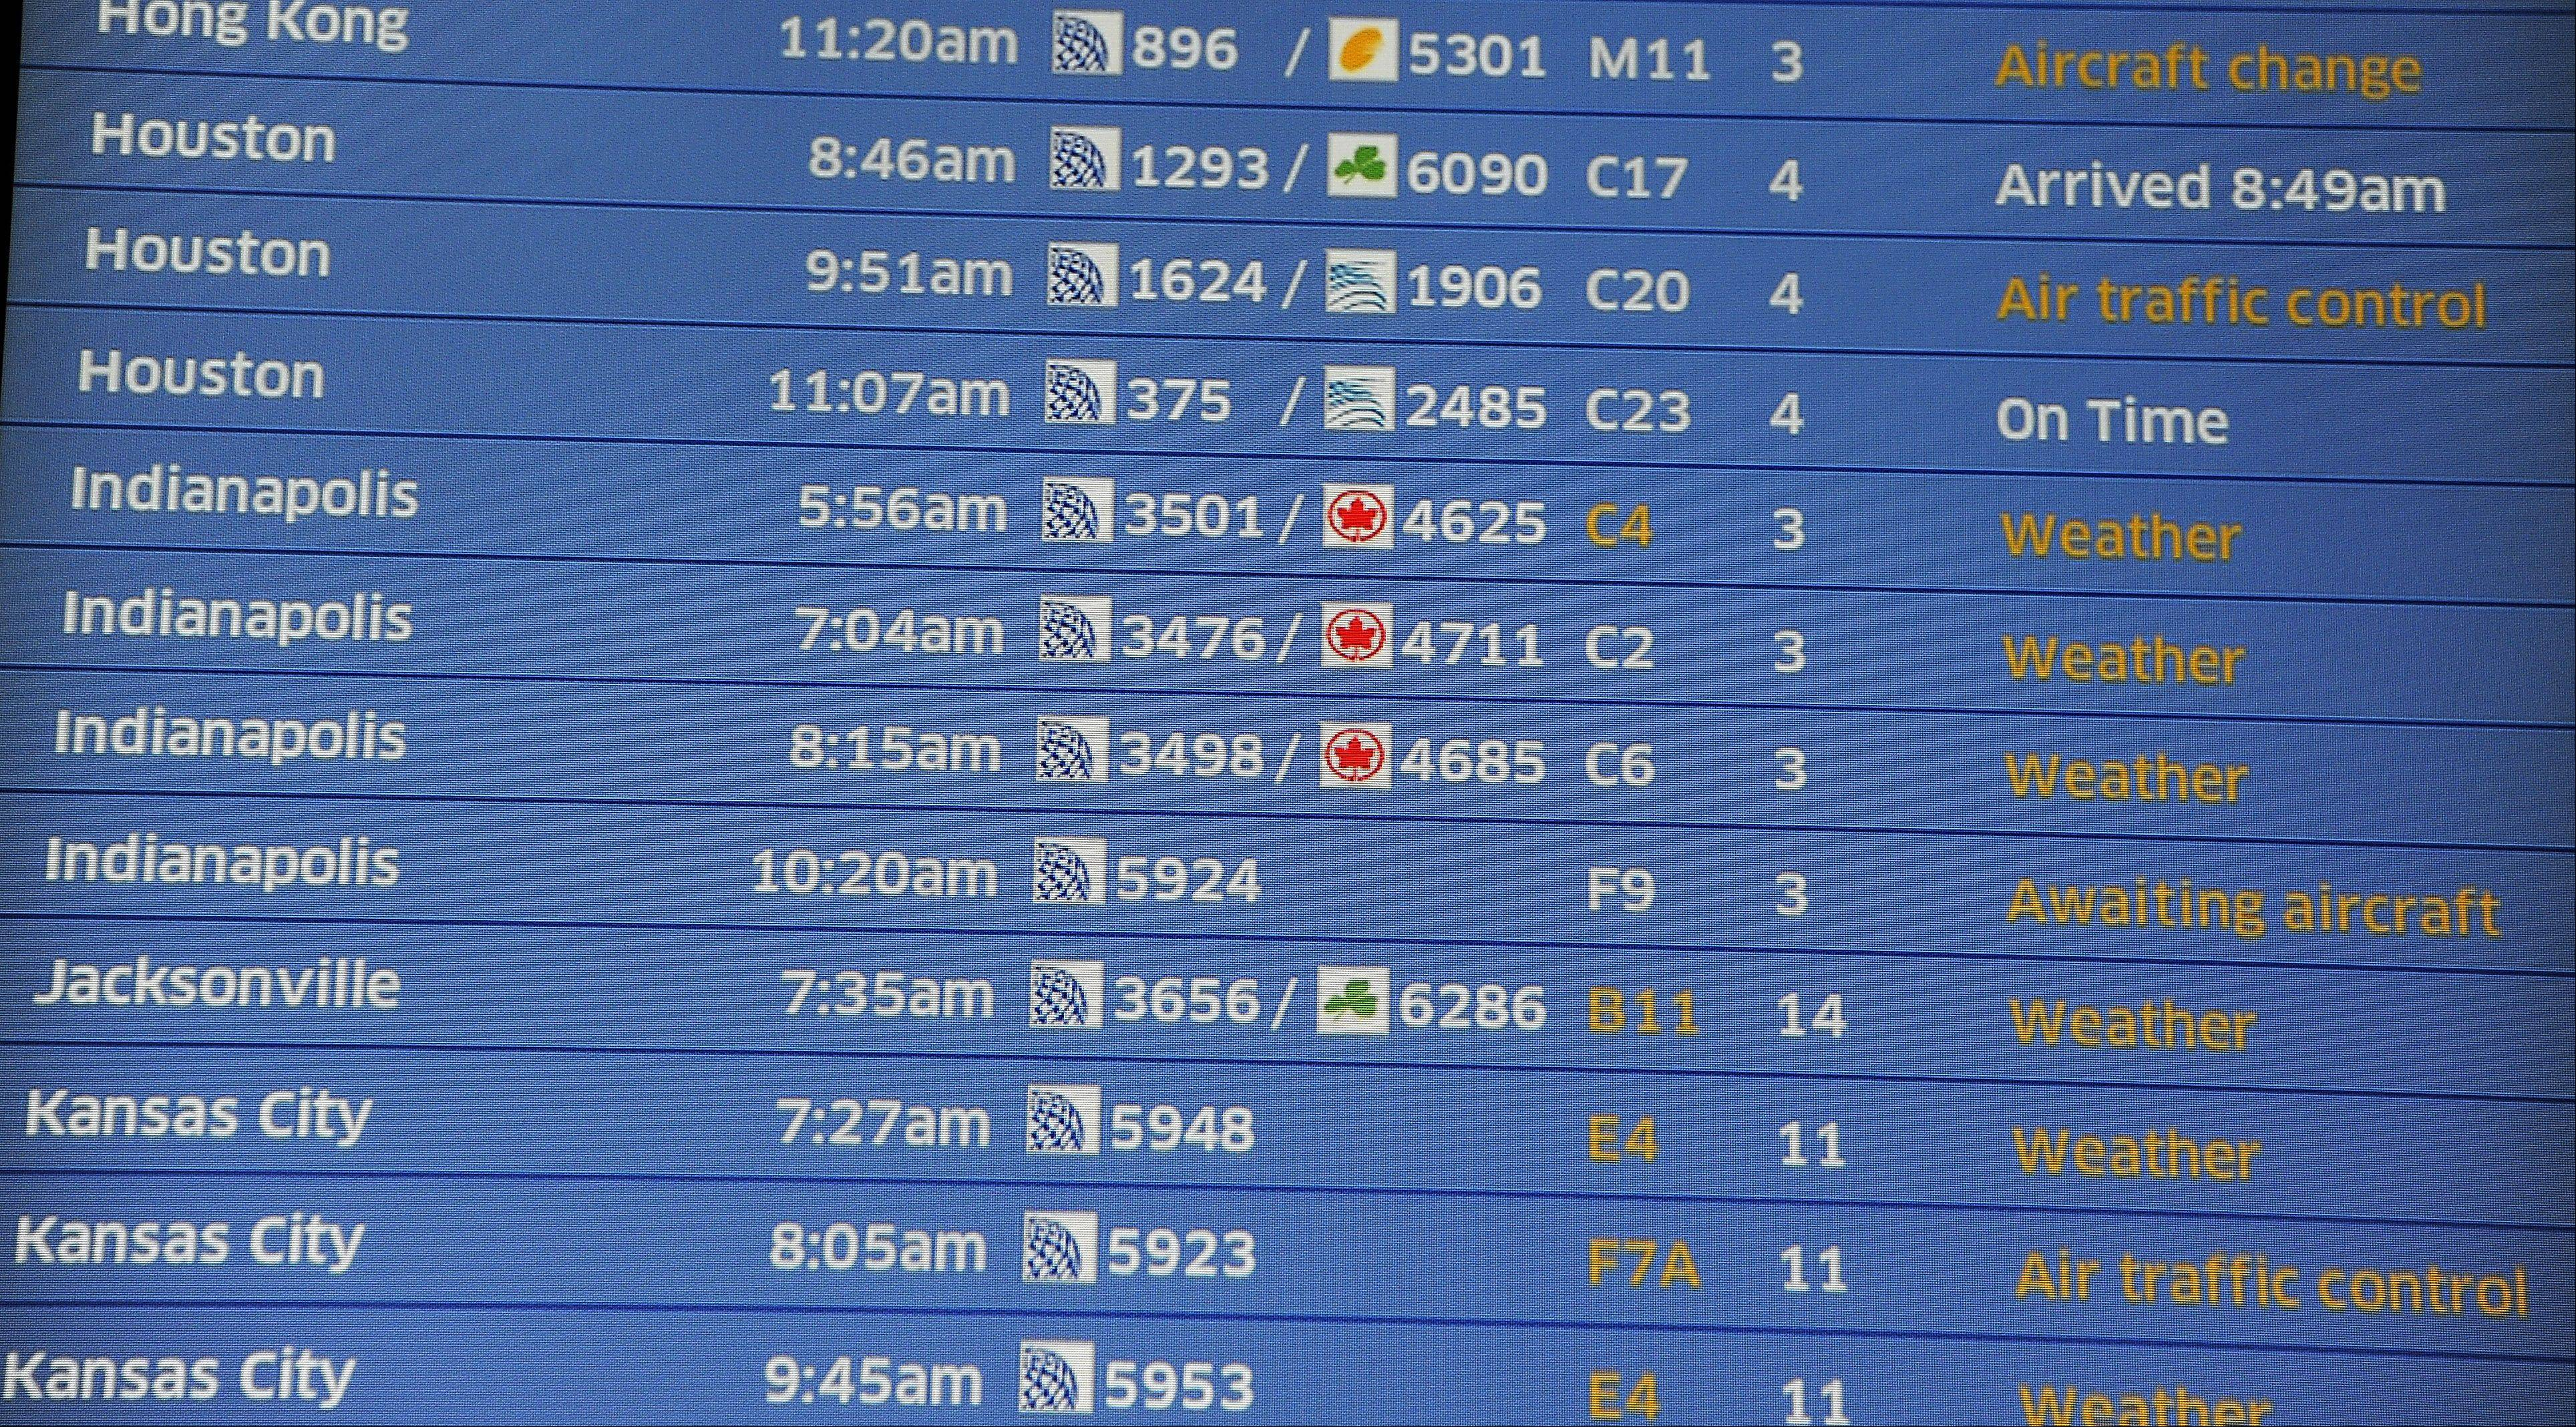 Weather delays popped up on the flight departures board at Chicago's O'Hare International Airport. Many flights were delayed by morning fog.